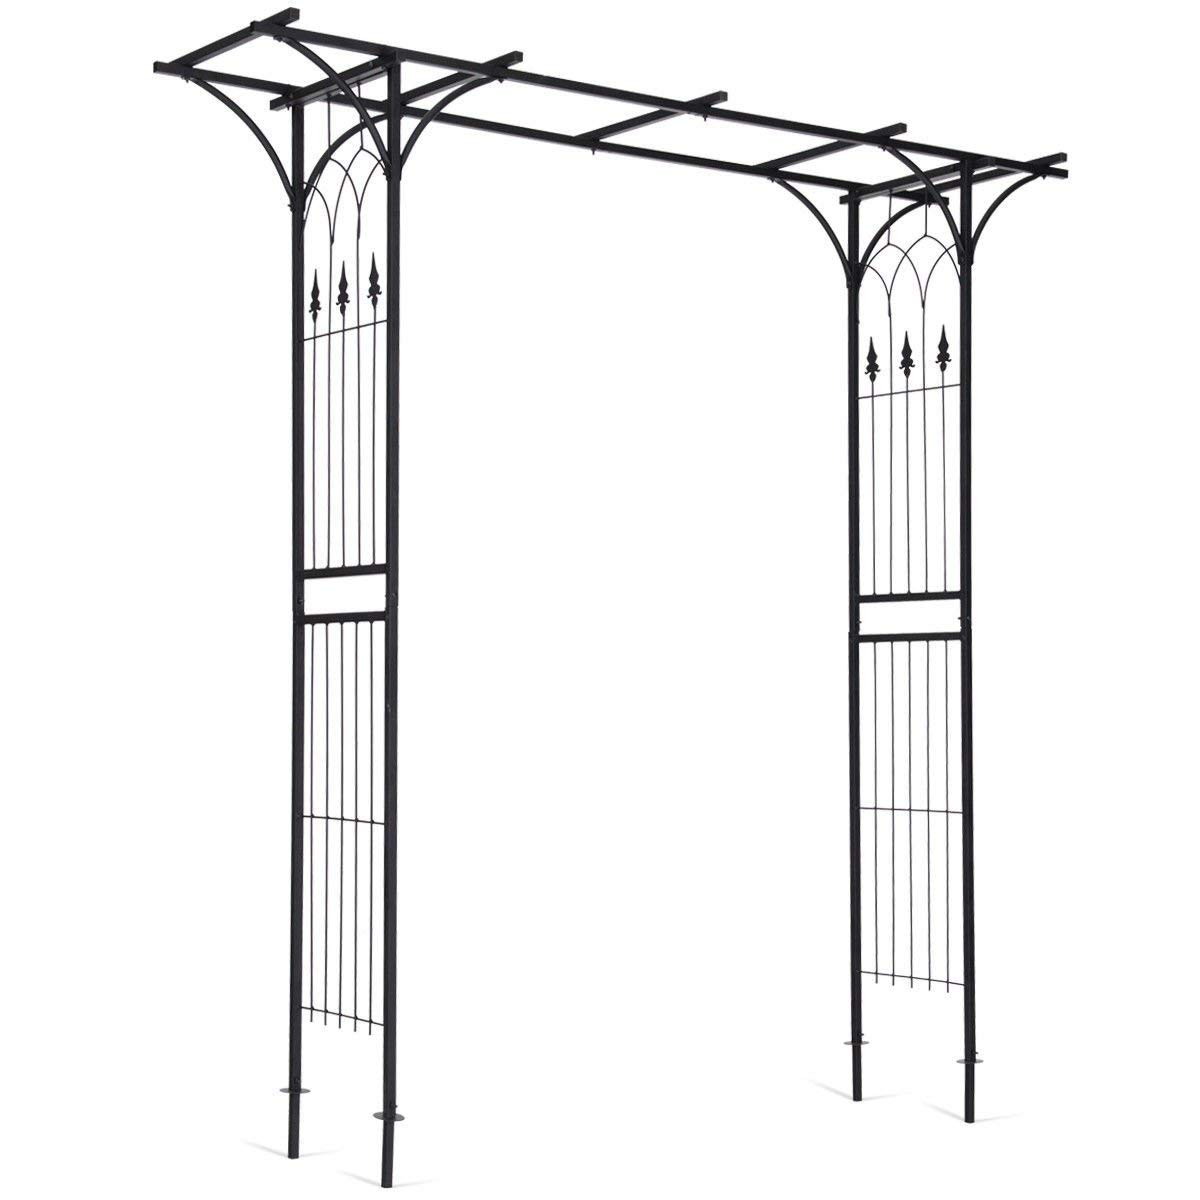 Giantex Garden Arch Arbor High Wide Metal Steel Frame Stand Trellis for Rose Vines Plant Climbing Patio Lawn Backyard Party Wedding Ceremony Decoration Outdoor Gardening Walkway Arches,Black